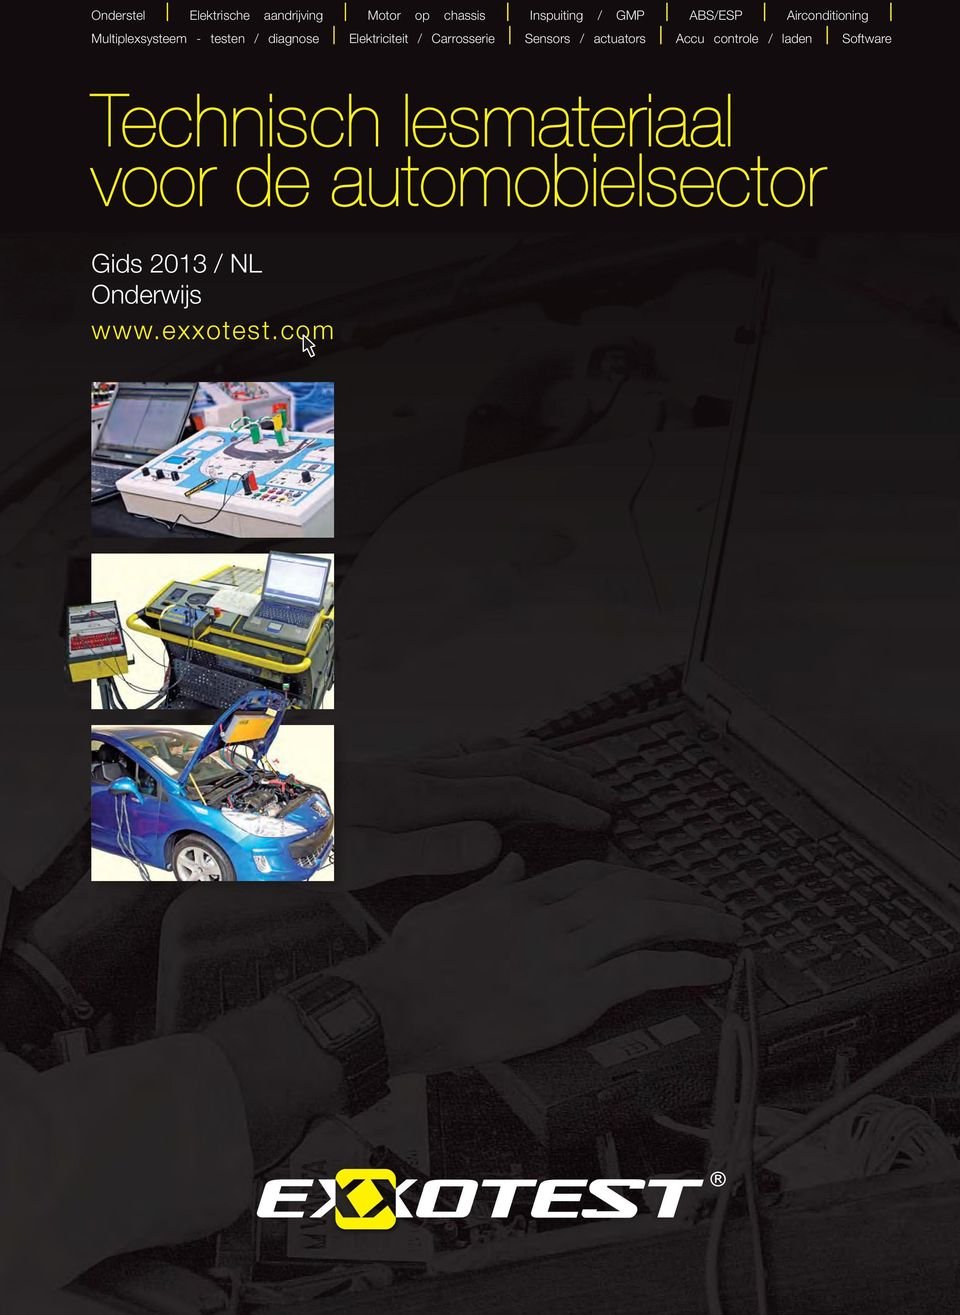 / Carrosserie Sensors / actuators Accu controle / laden Software Technisch